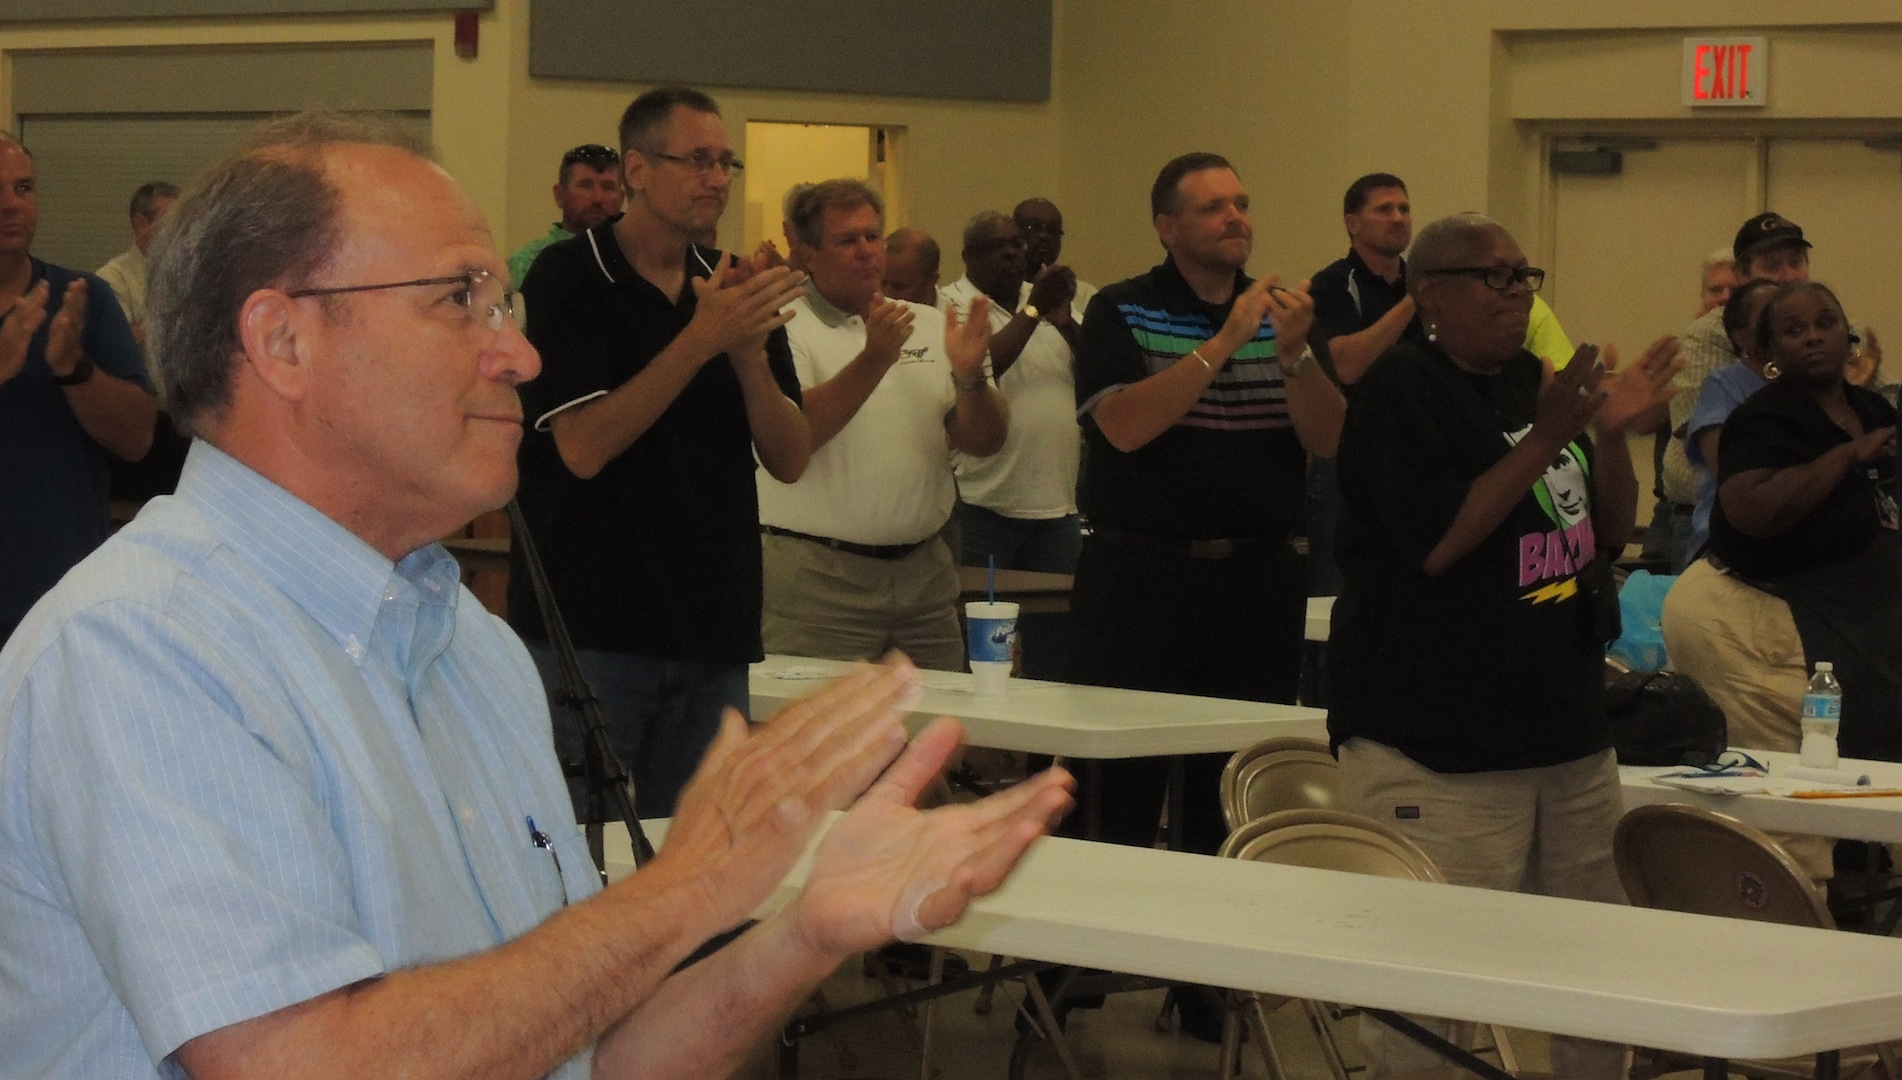 STANDING OVATION: Delegates to the Greater St. Louis Labor Council gave a standing ovation to President Bob Soutier who announced his retirement at the June 18 Council meeting. Nominations for the office of president will be held at 6:30 p.m. at the Tuesday, July 15 delegate meeting at IBEW, Local 1 Hall, 5850 Elizabeth Ave. If an election is needed, voting will take place at 6:30 p.m. at the Tuesday, Aug. 19, 2014 delegate meeting. – Labor Tribune photo